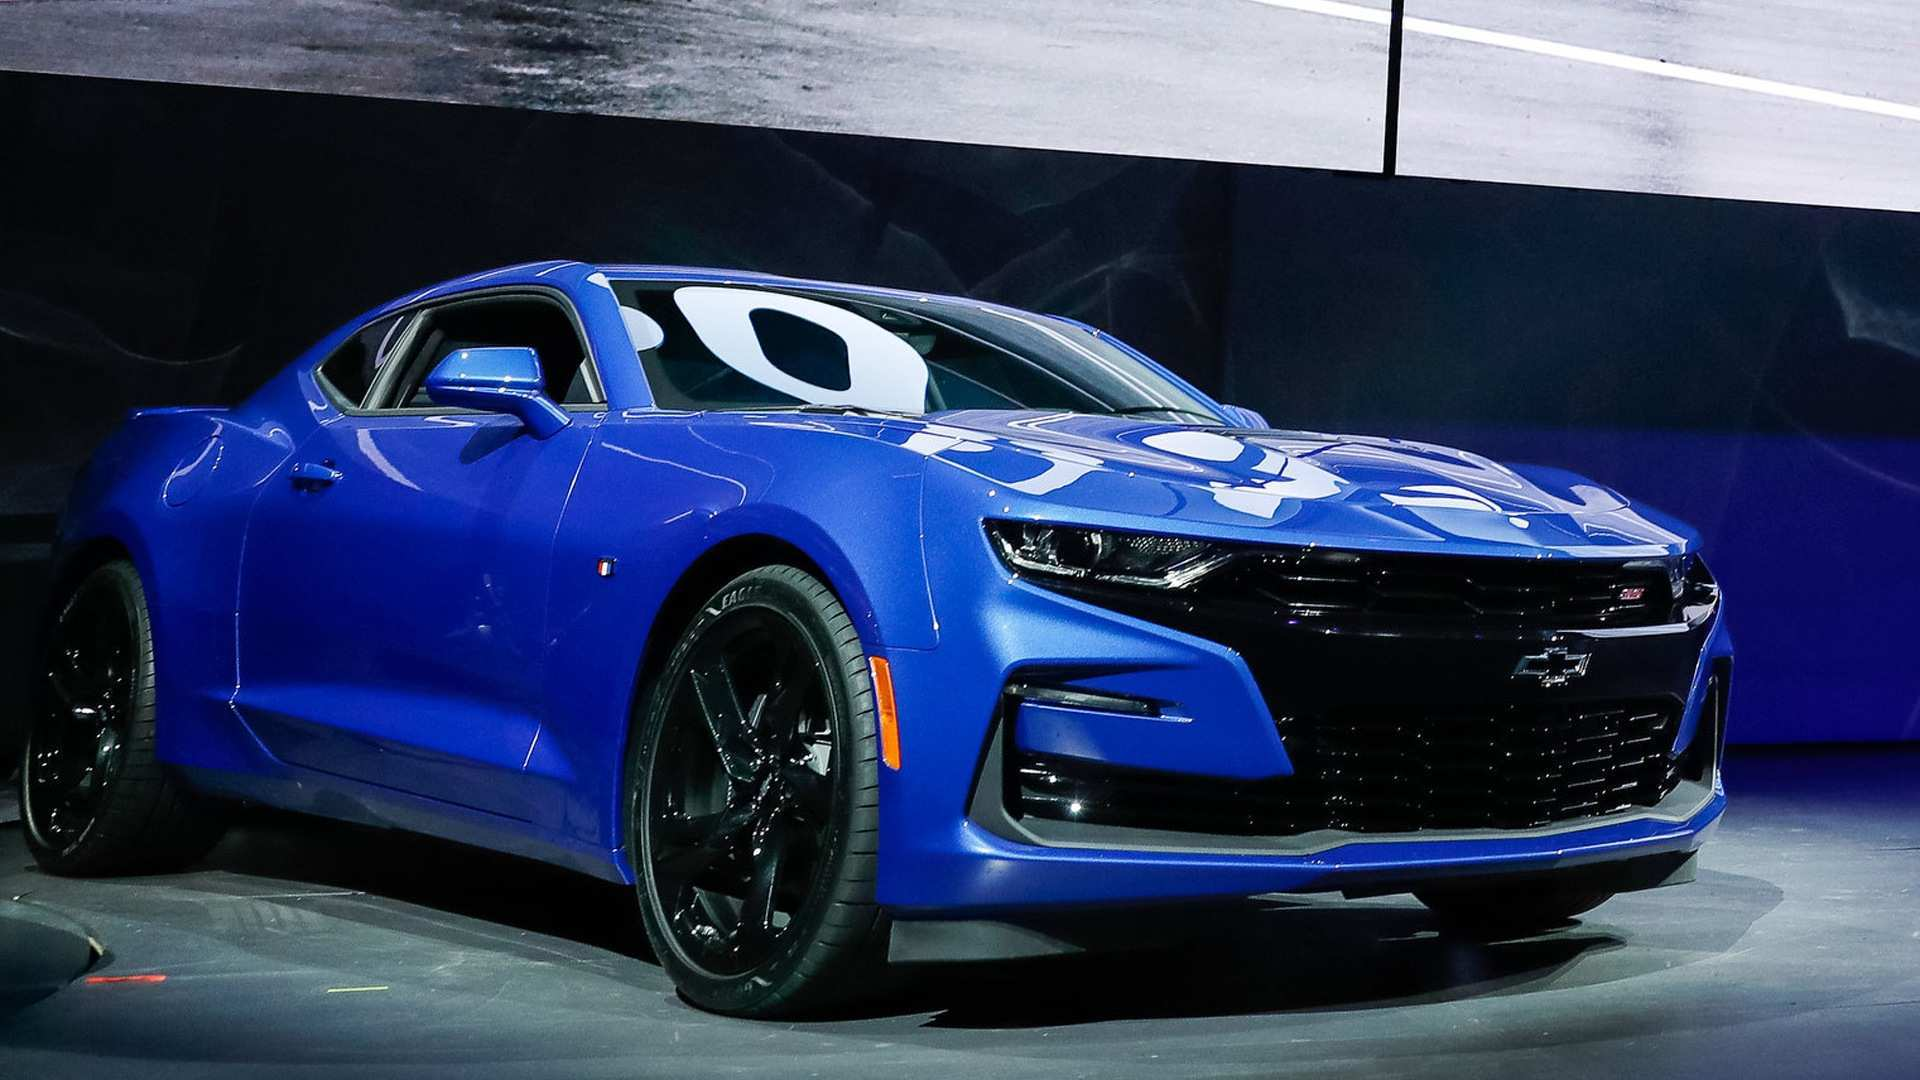 12 Gallery of 2019 Chevrolet Camaro Engine Redesign and Concept by 2019 Chevrolet Camaro Engine